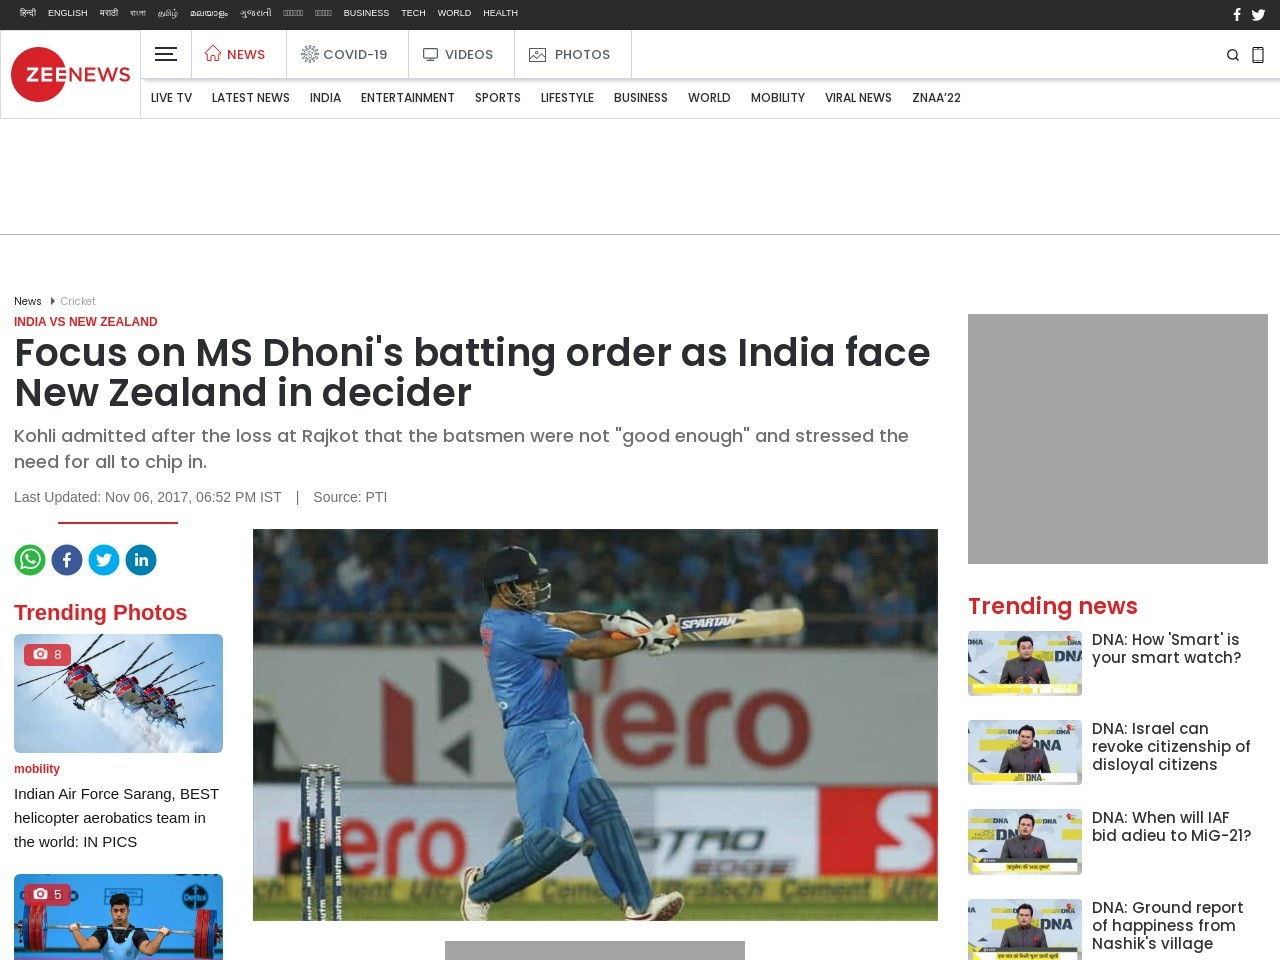 Focus on MS Dhoni's batting order as India face New Zealand in decider